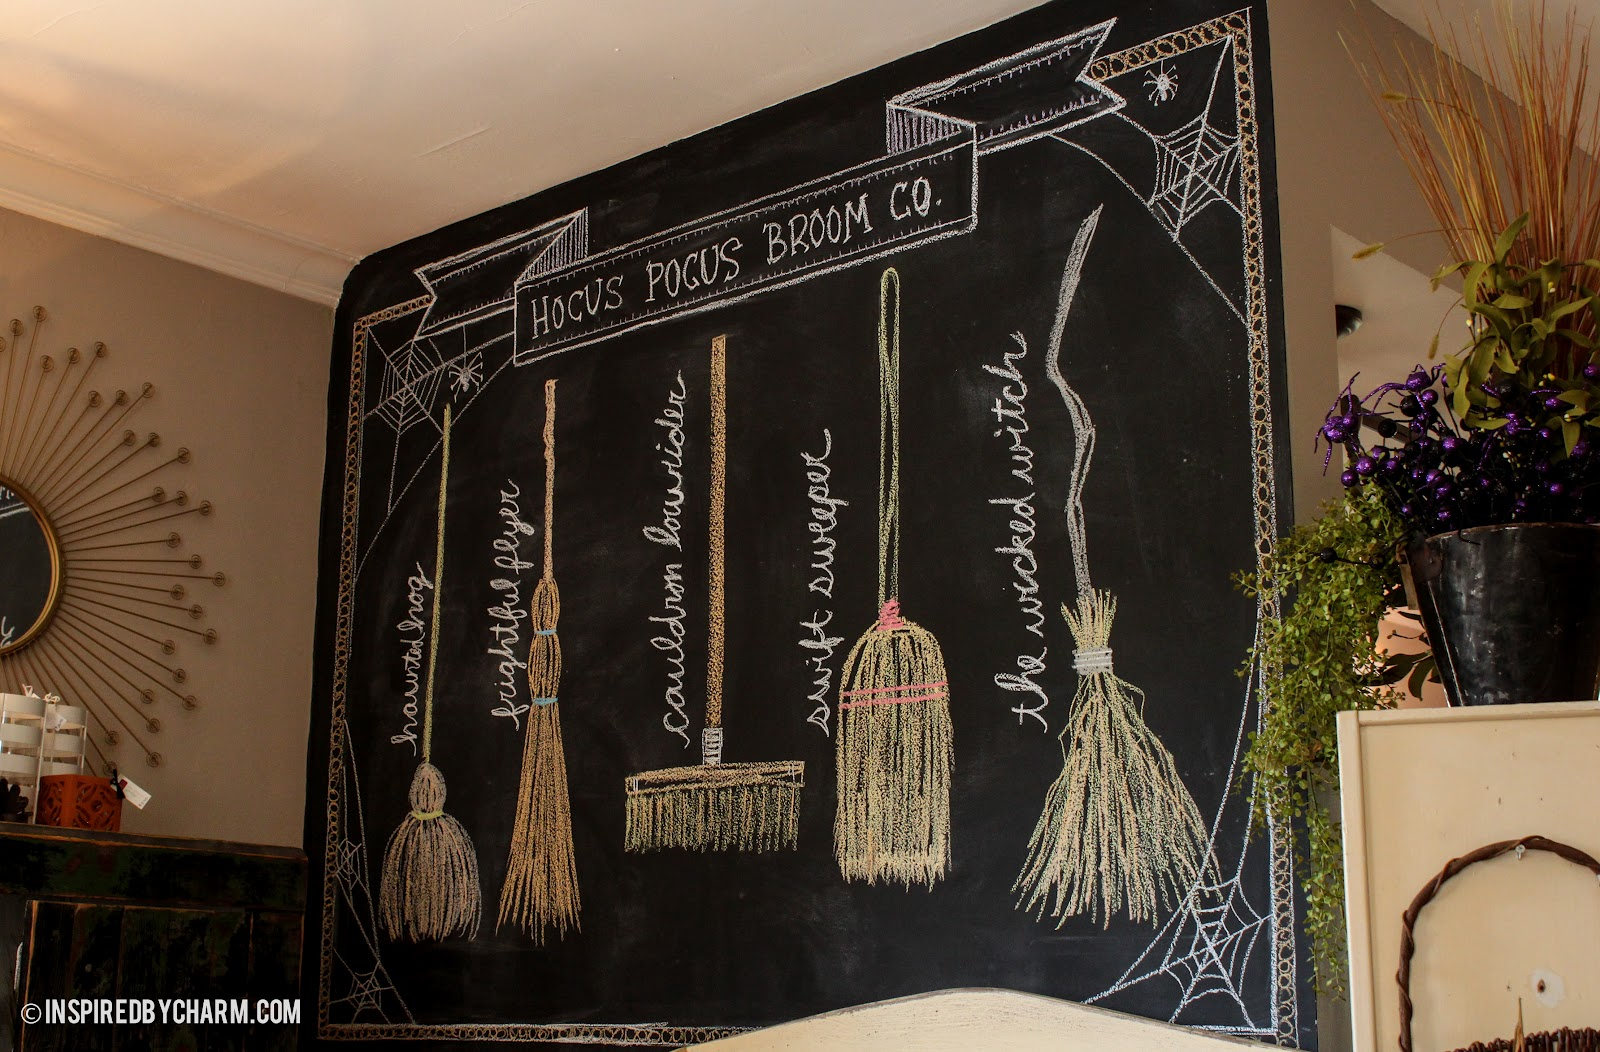 Hocus pocus broom co - Deco chambre harry potter ...